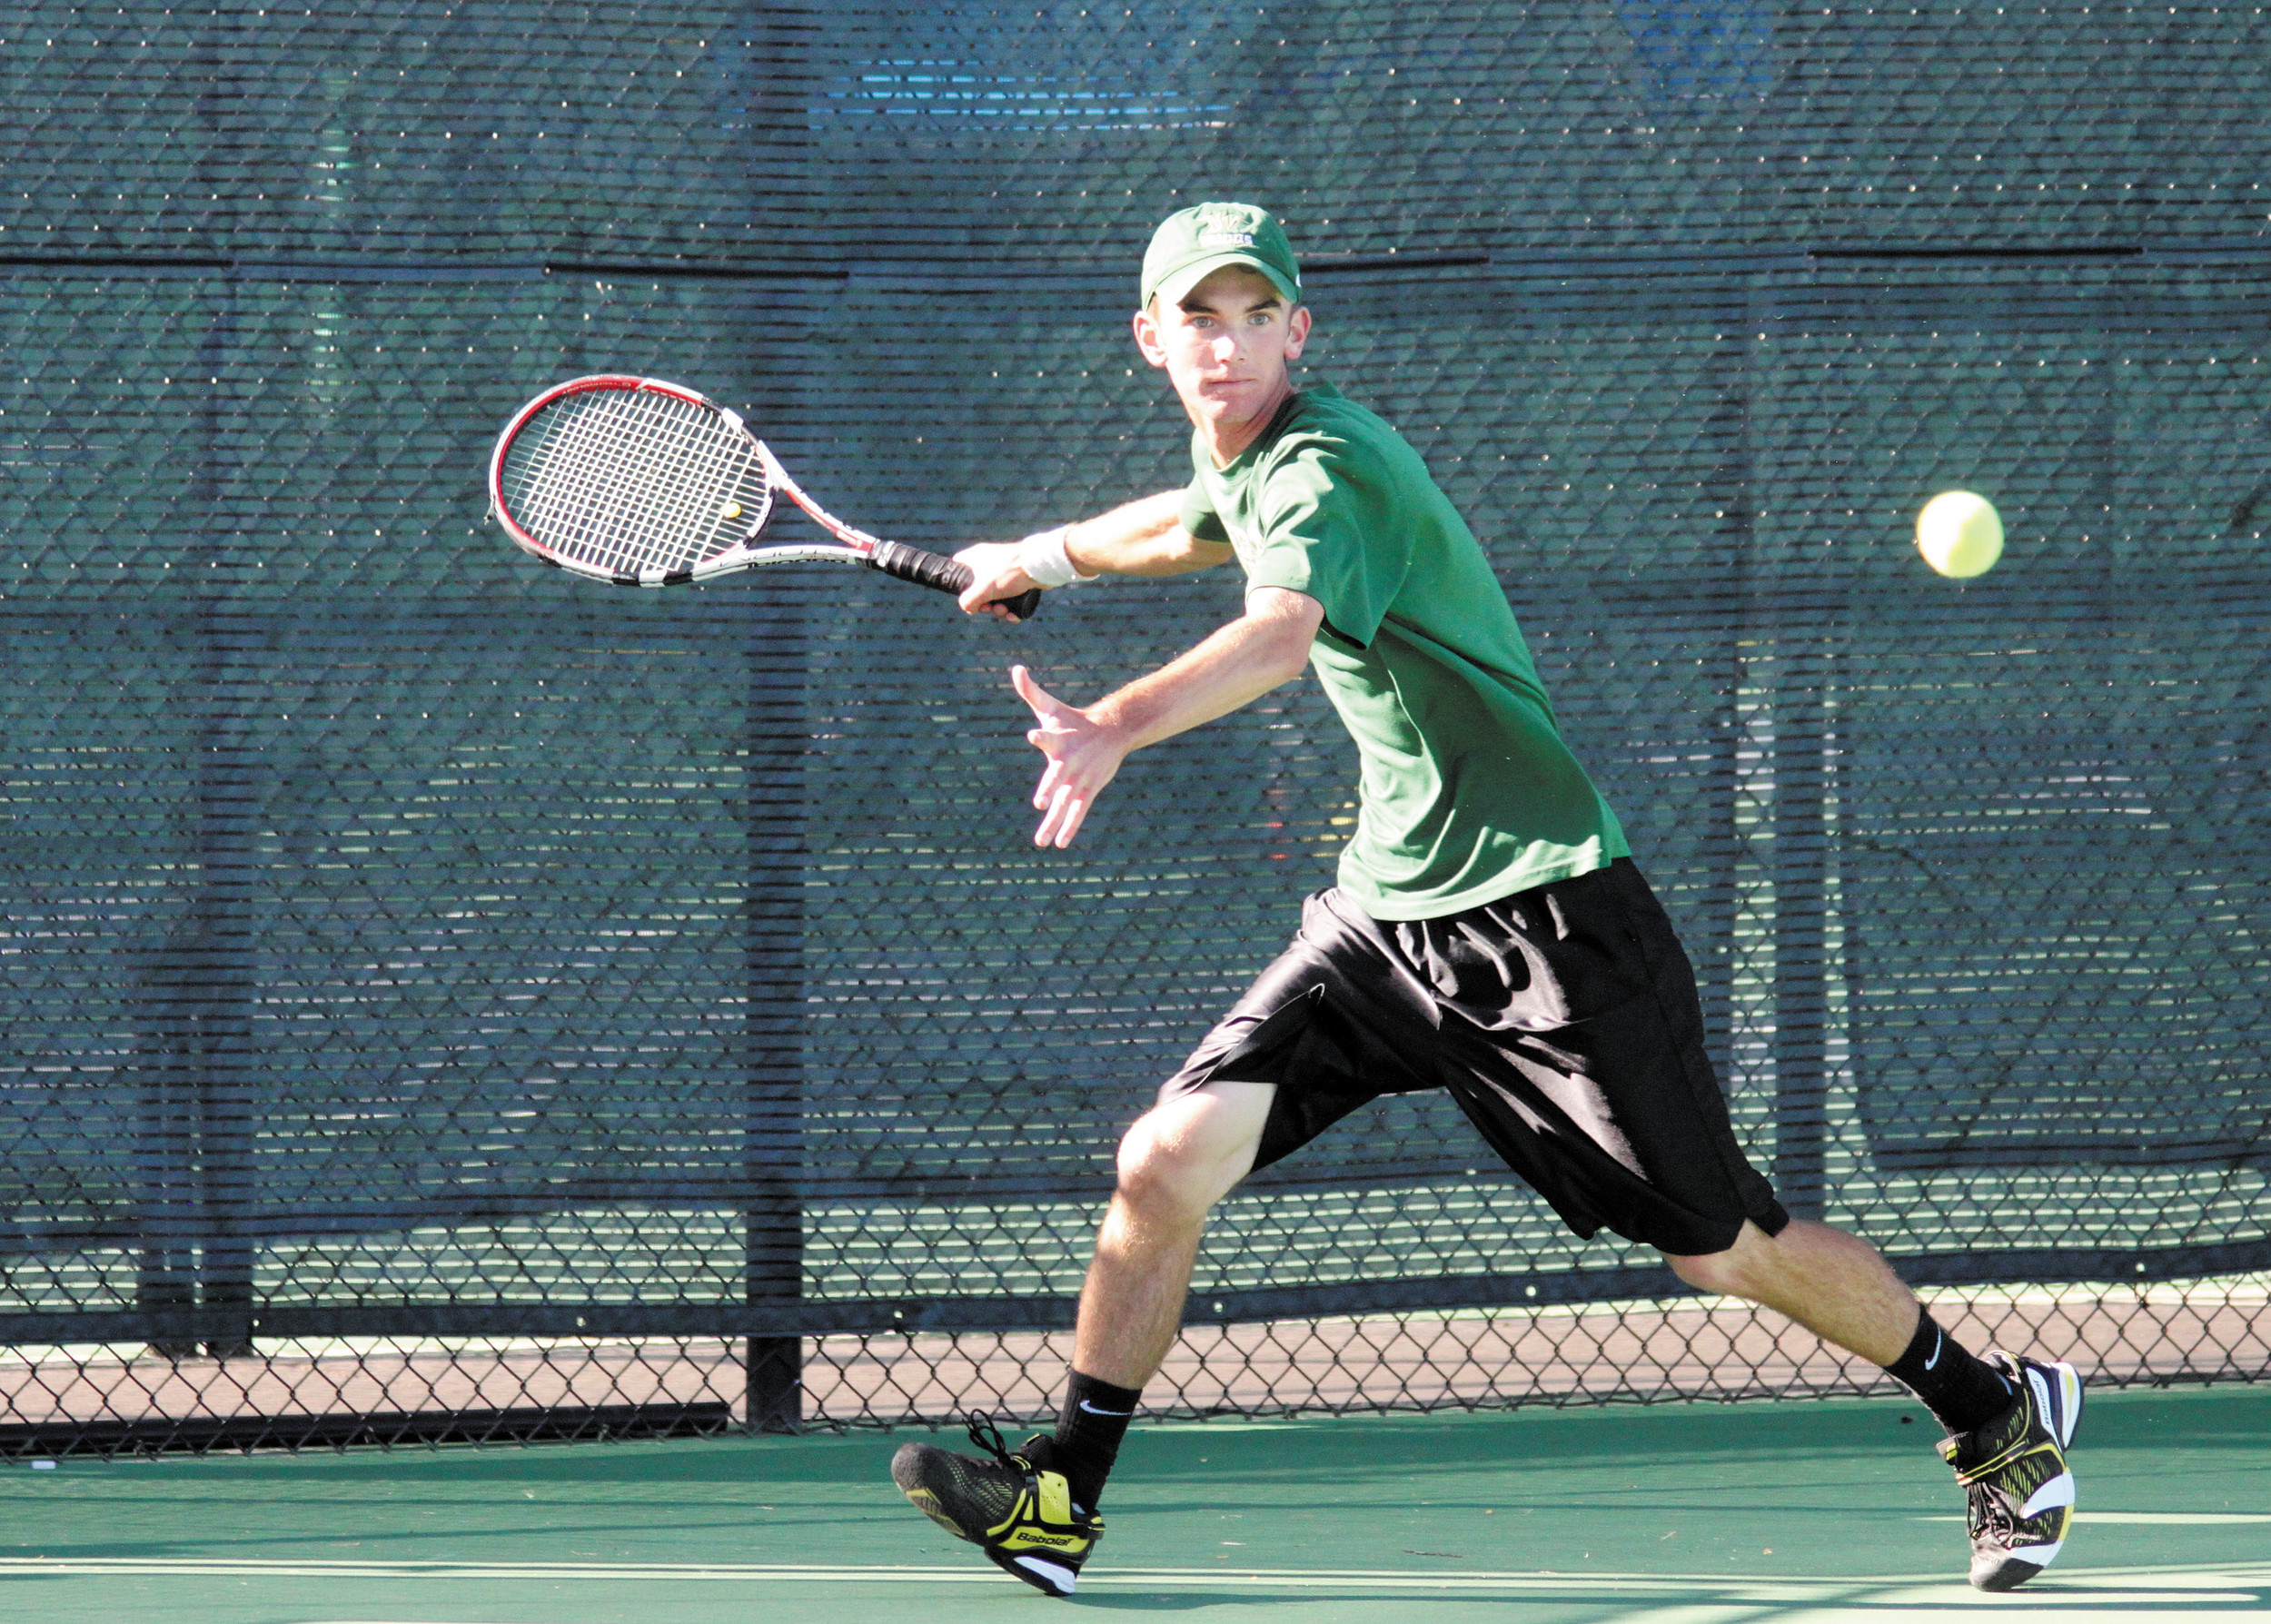 Mountain Vista's Ben Antonsen returns a volley during a 6-1, 6-1 victory over Columbine's Andy Wright to earn a Class 5A Regional title Oct. 3. 2013 at Redstone Park in Highlands Ranch. Antonsen finished second at state for the Golden Eagles and is the only singles player from last year's roster to return to the court this fall.